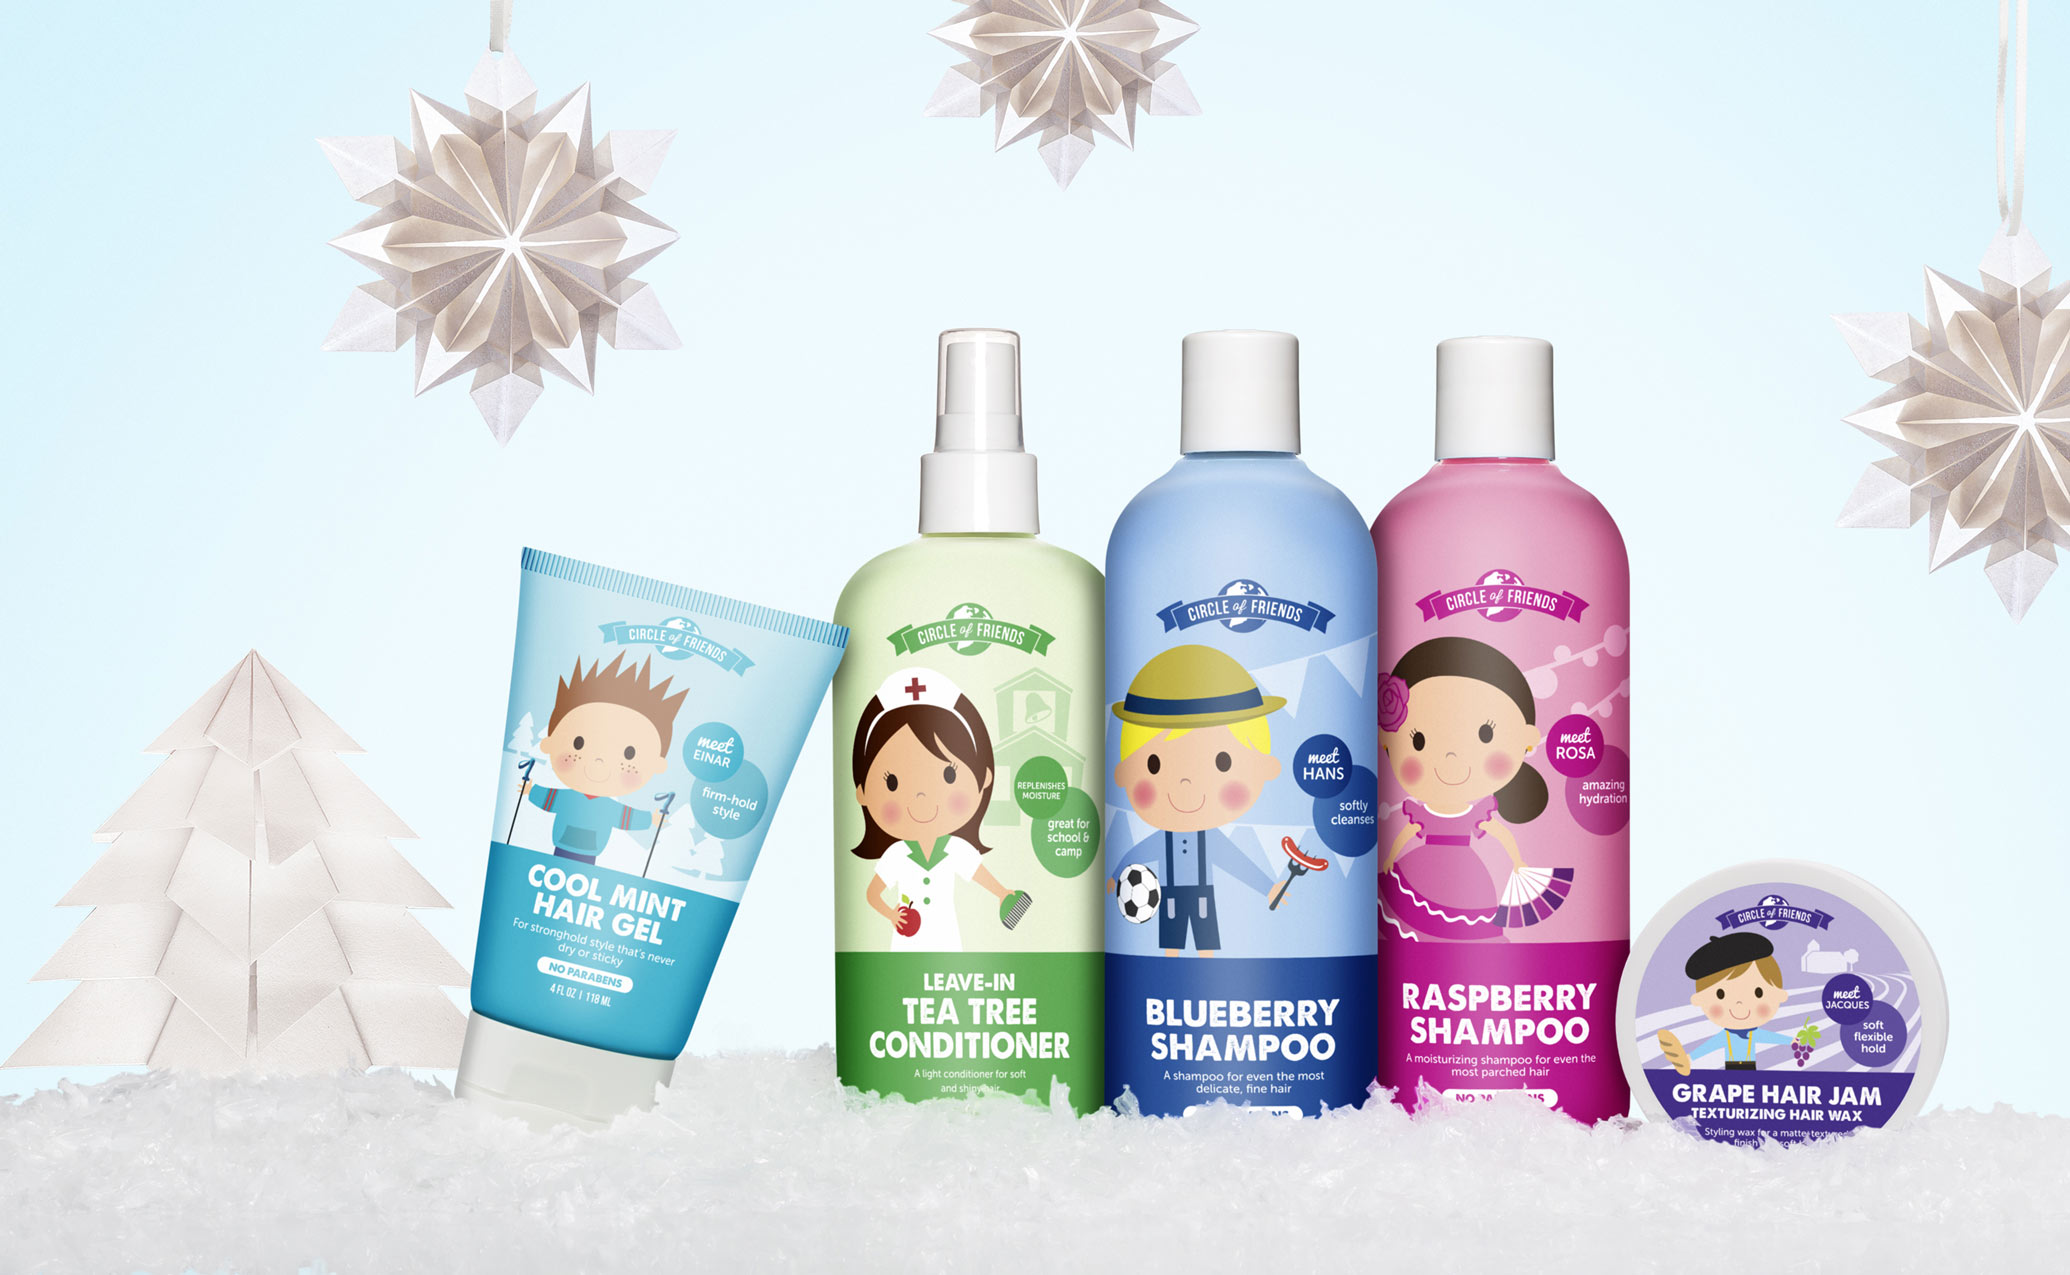 Circle of Friends hair care products in a winter scene